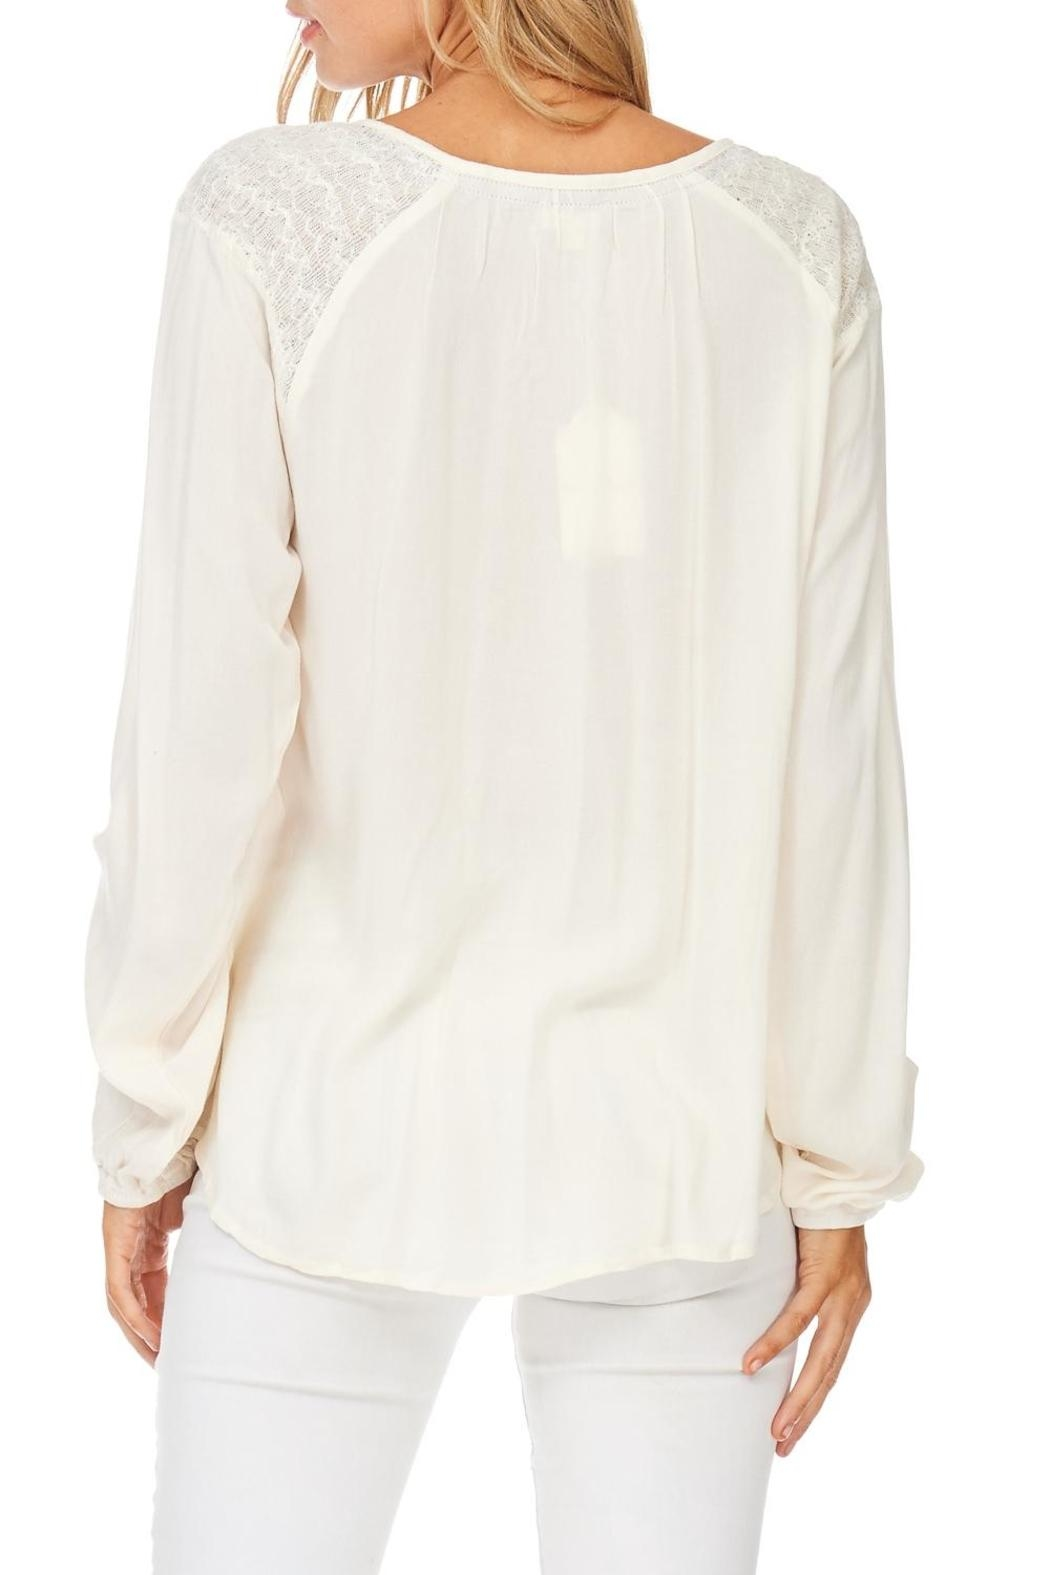 Hem & Thread Cream Embroidered Detail Blouse - Back Cropped Image